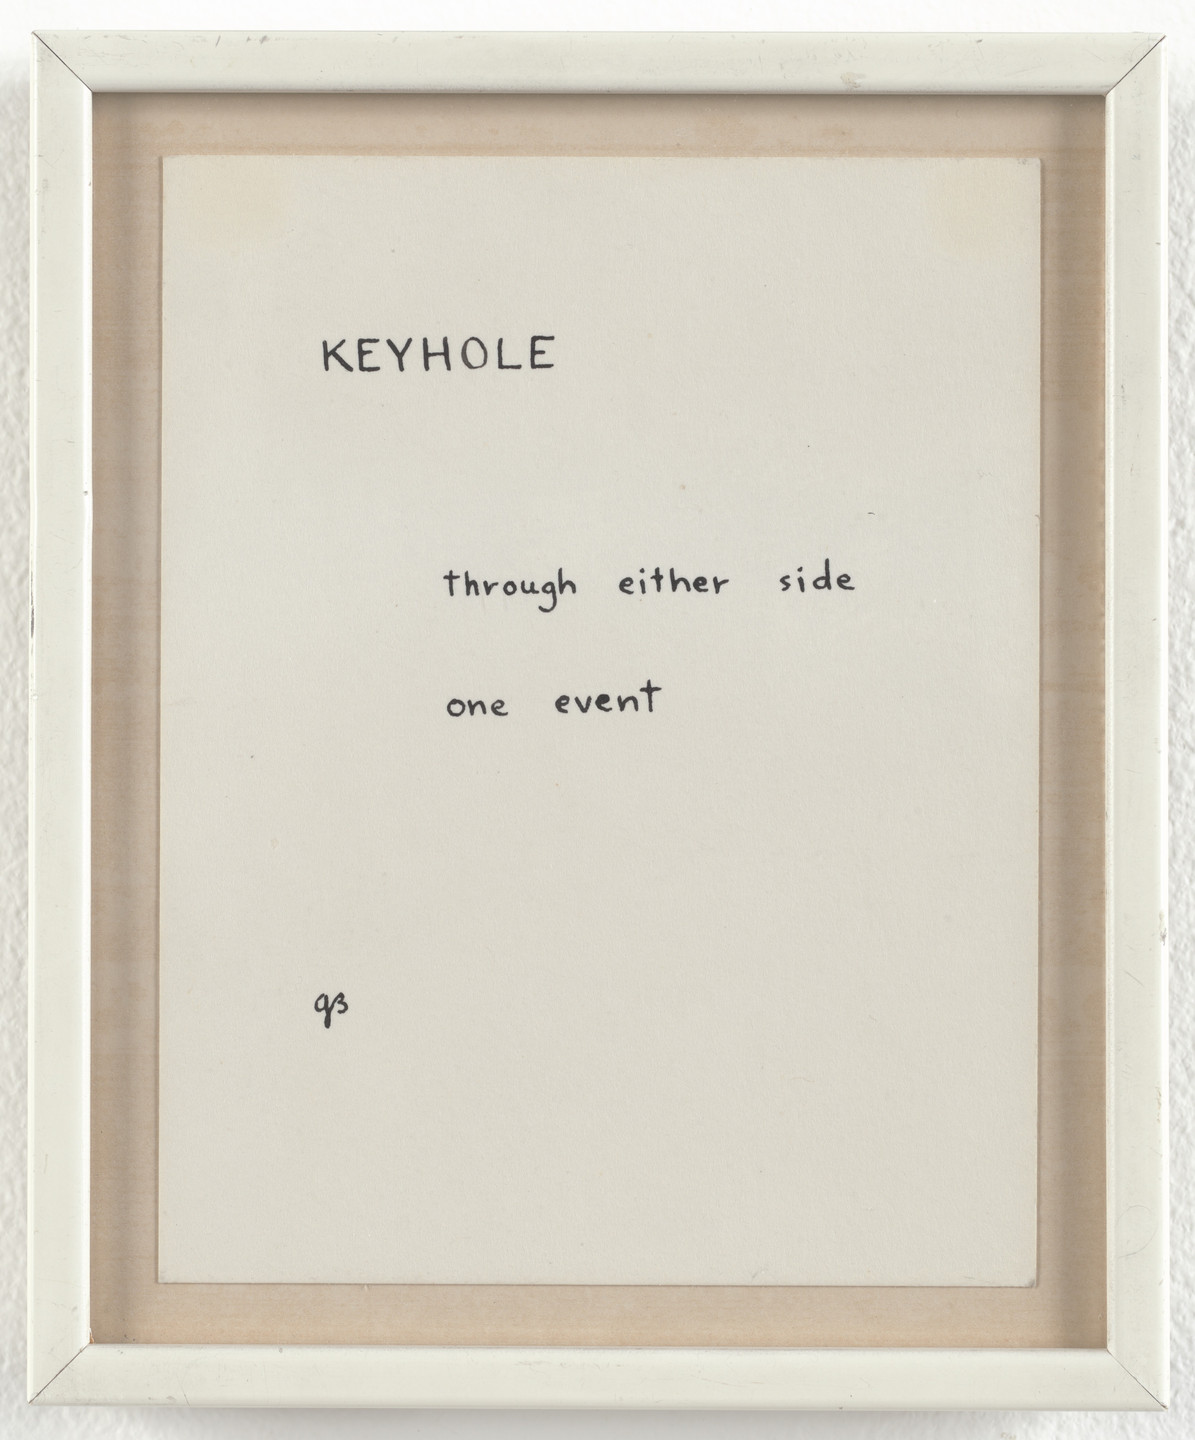 George Brecht. Keyhole. 1962